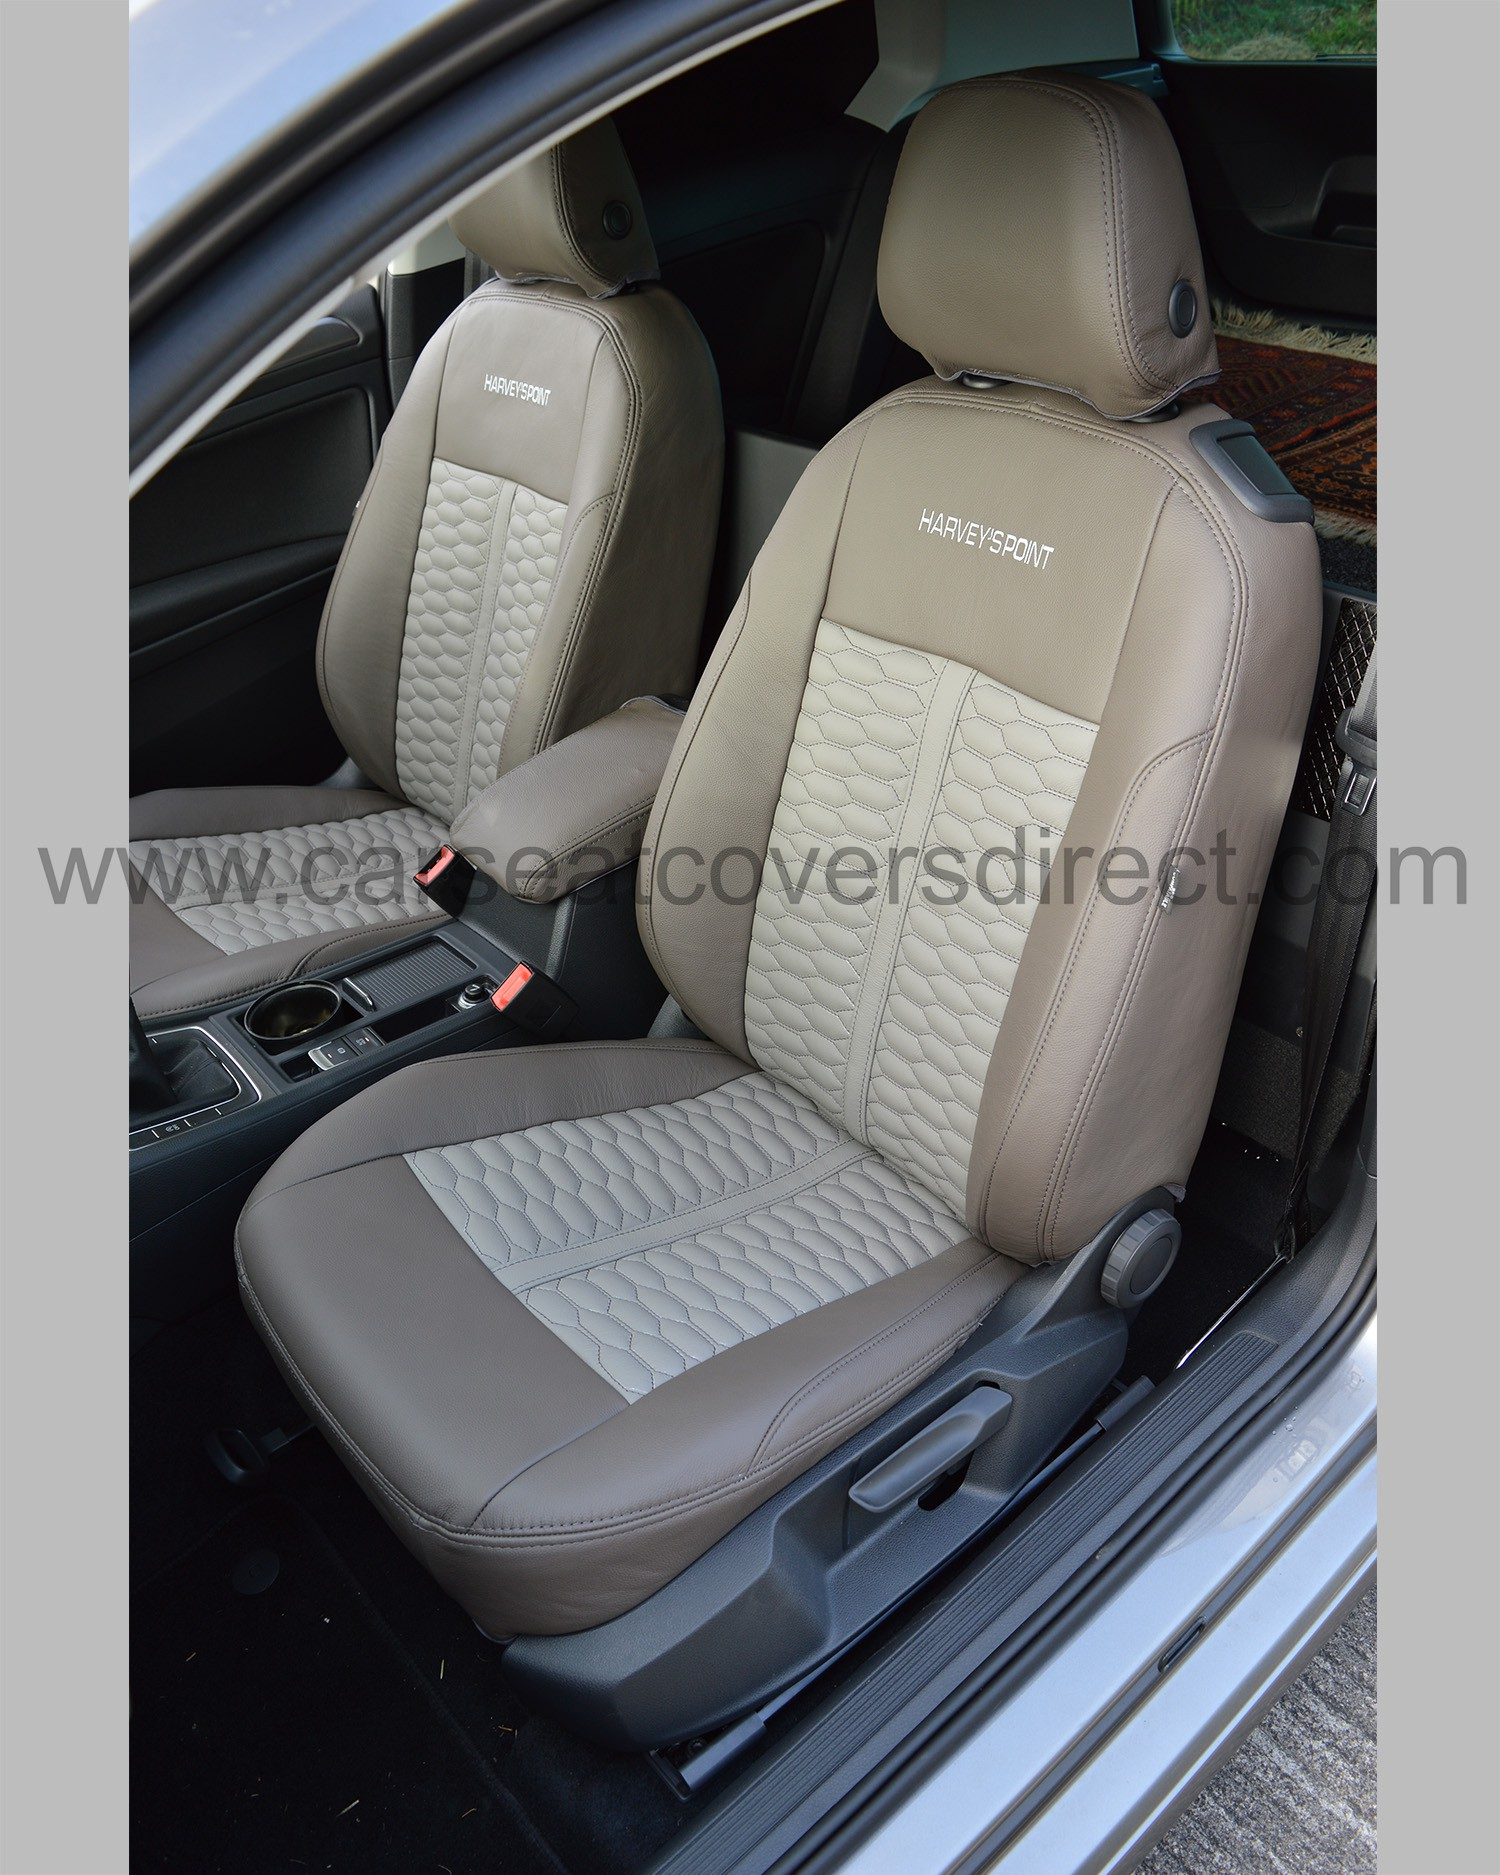 Volkswagen VW Golf MK7 Seat Covers - passenger seats